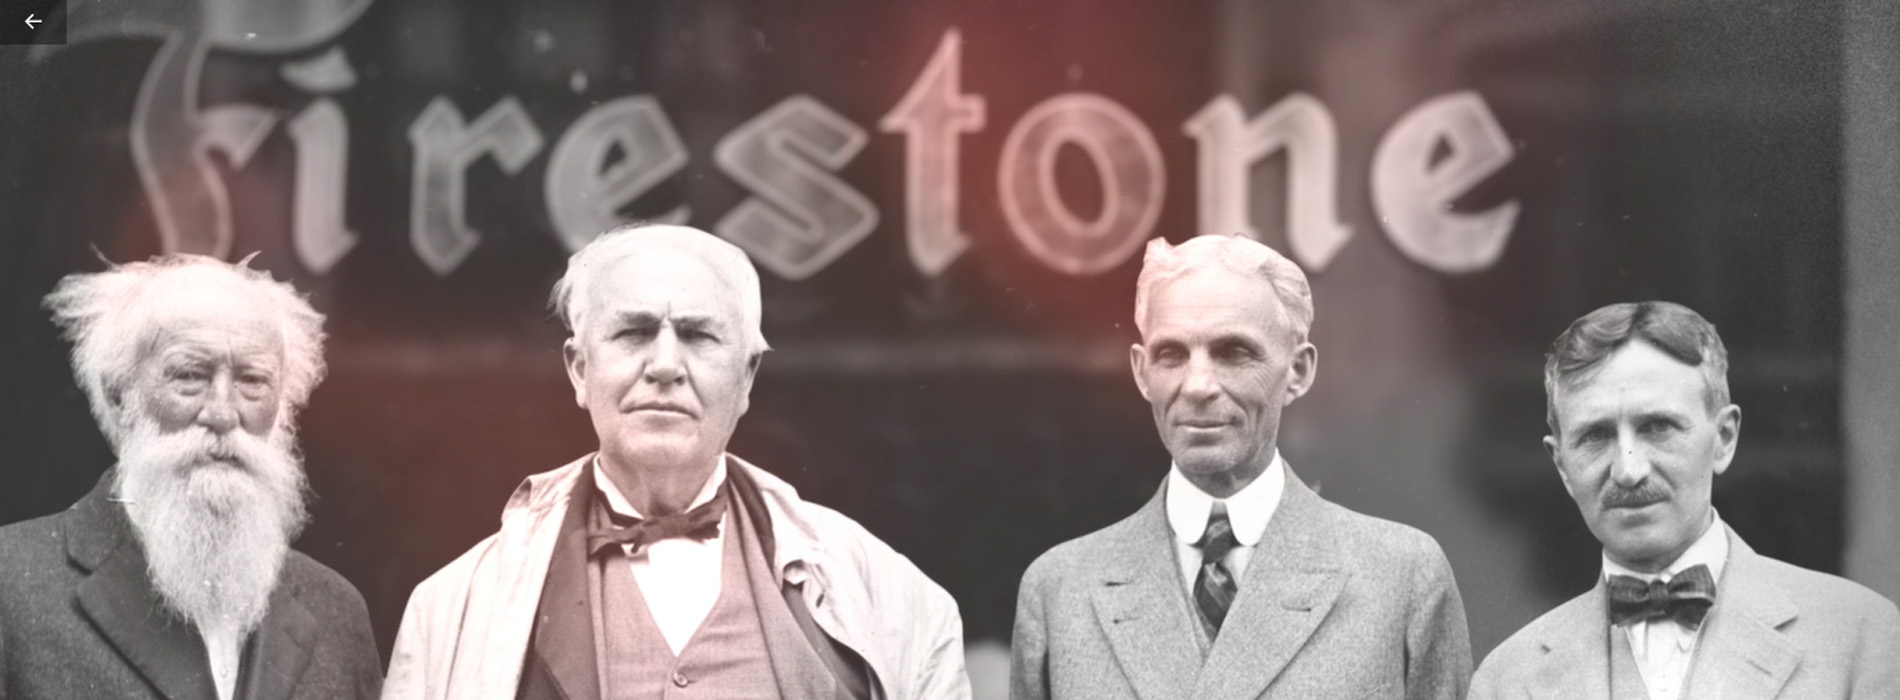 Celebrating the Legacy of Harvey S. Firestone on the 150th Anniversary of His Birth